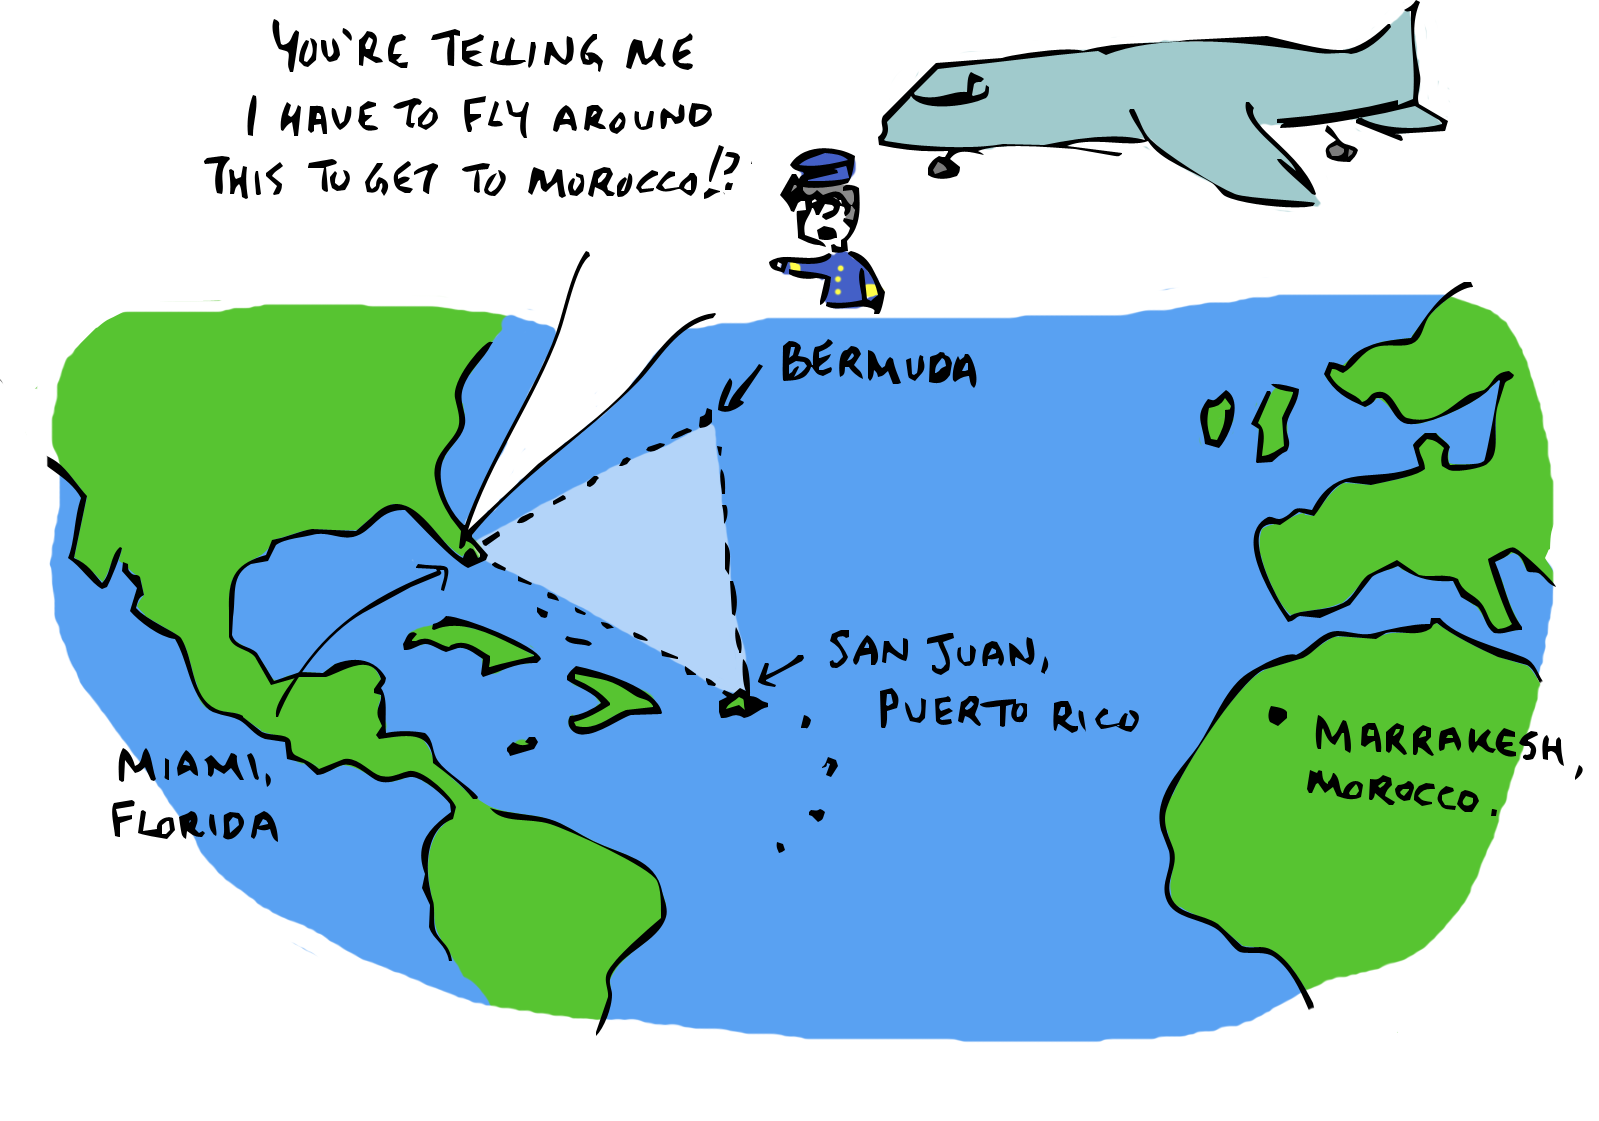 20 years research on bermuda triangle The bermuda triangle for years, many planes and ships have disappeared in the area of the bermuda triangle in my essay i'm going to try to find out and tell you, my fellow students, why this phenomenon is occurring.